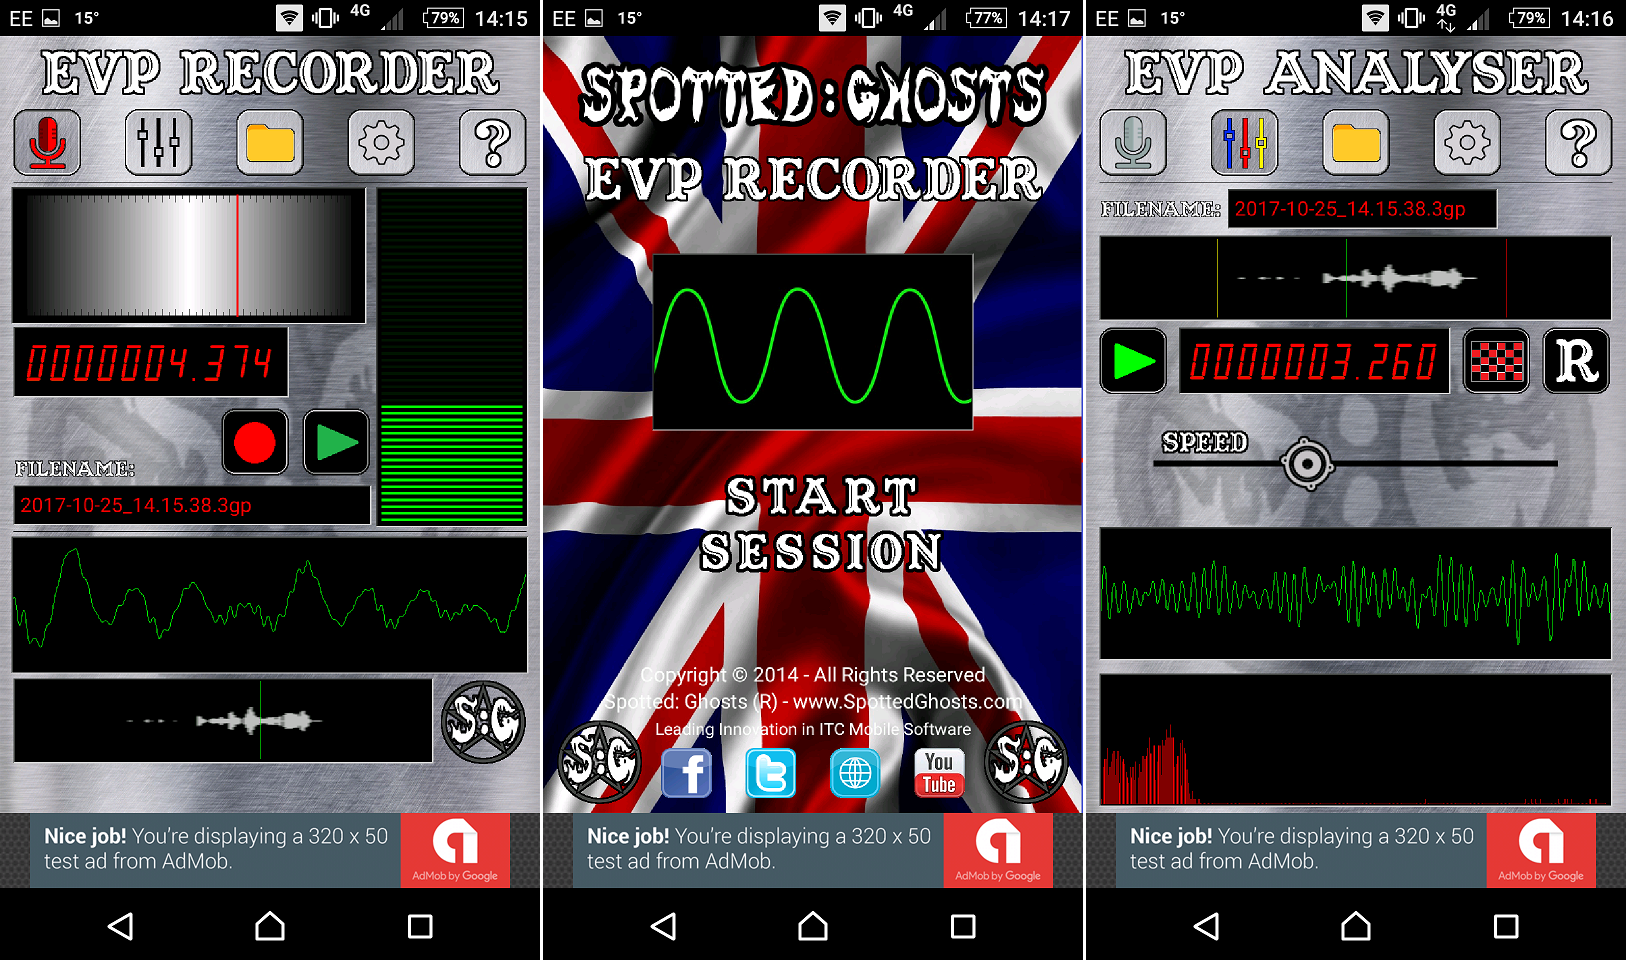 Spotted: Ghosts :: EVP RECORDER